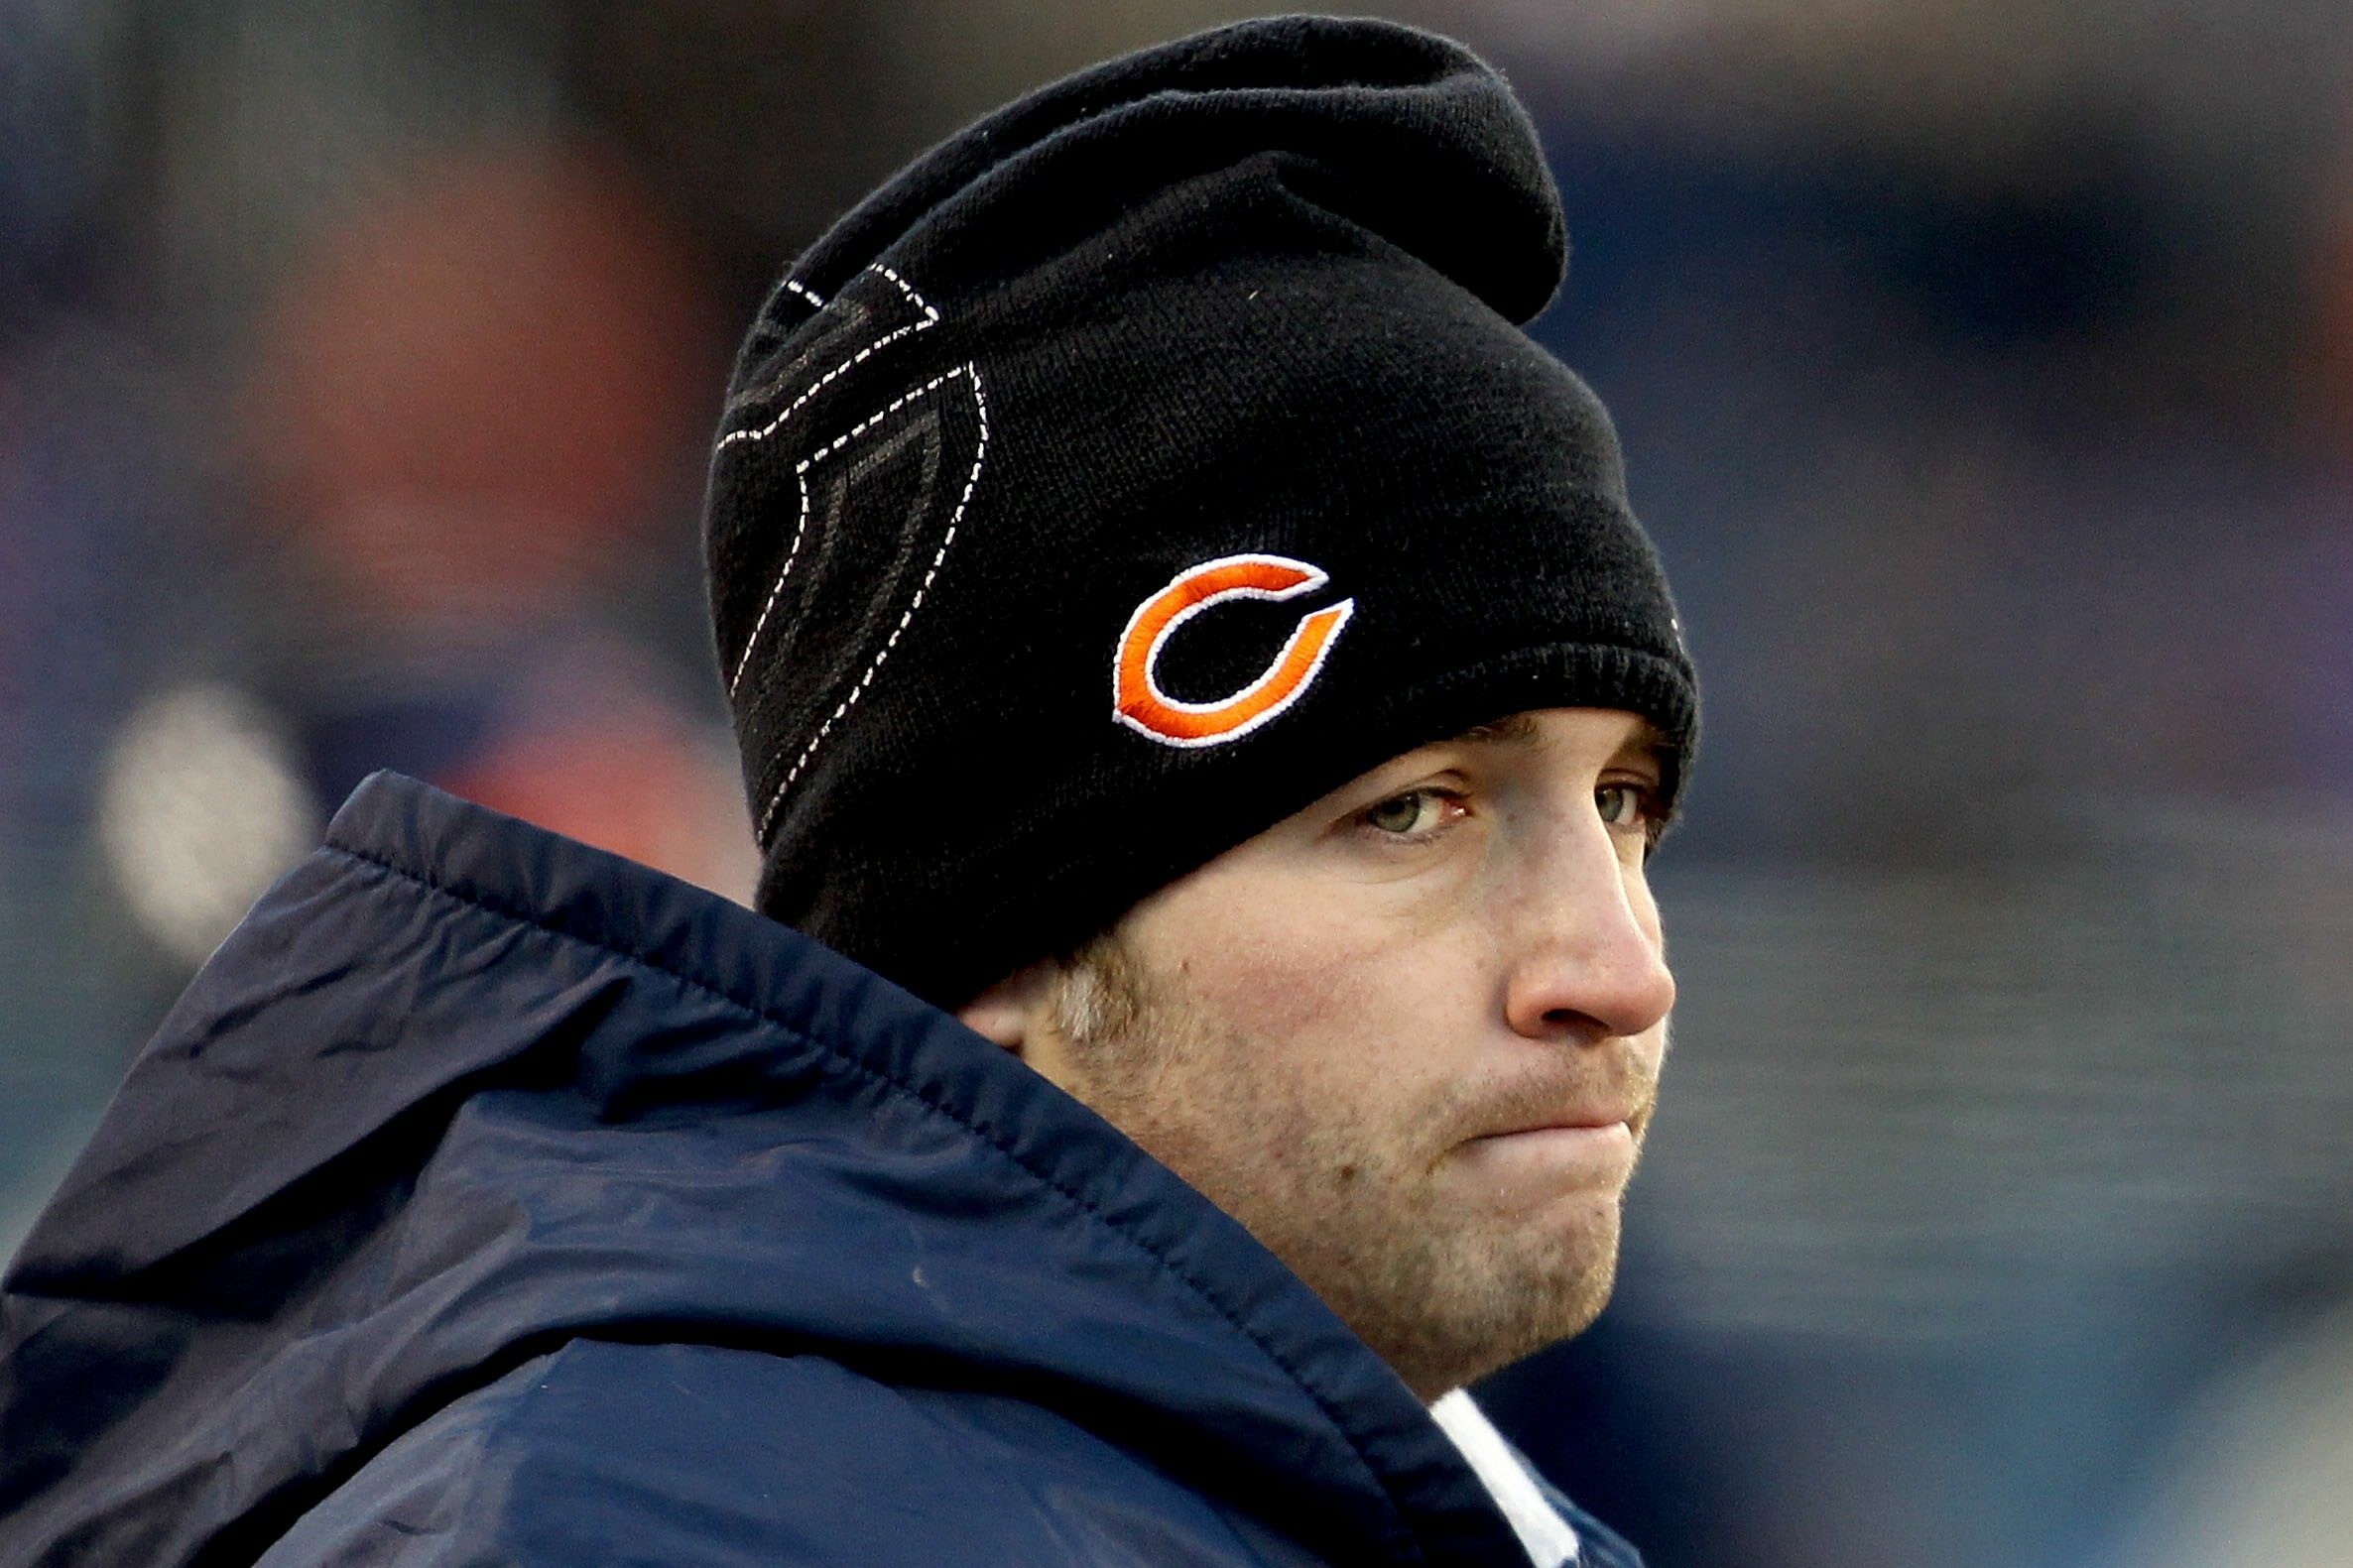 An injured Jay Cutler was widely criticized during and after the NFC championship game in 2011. (Getty Images)